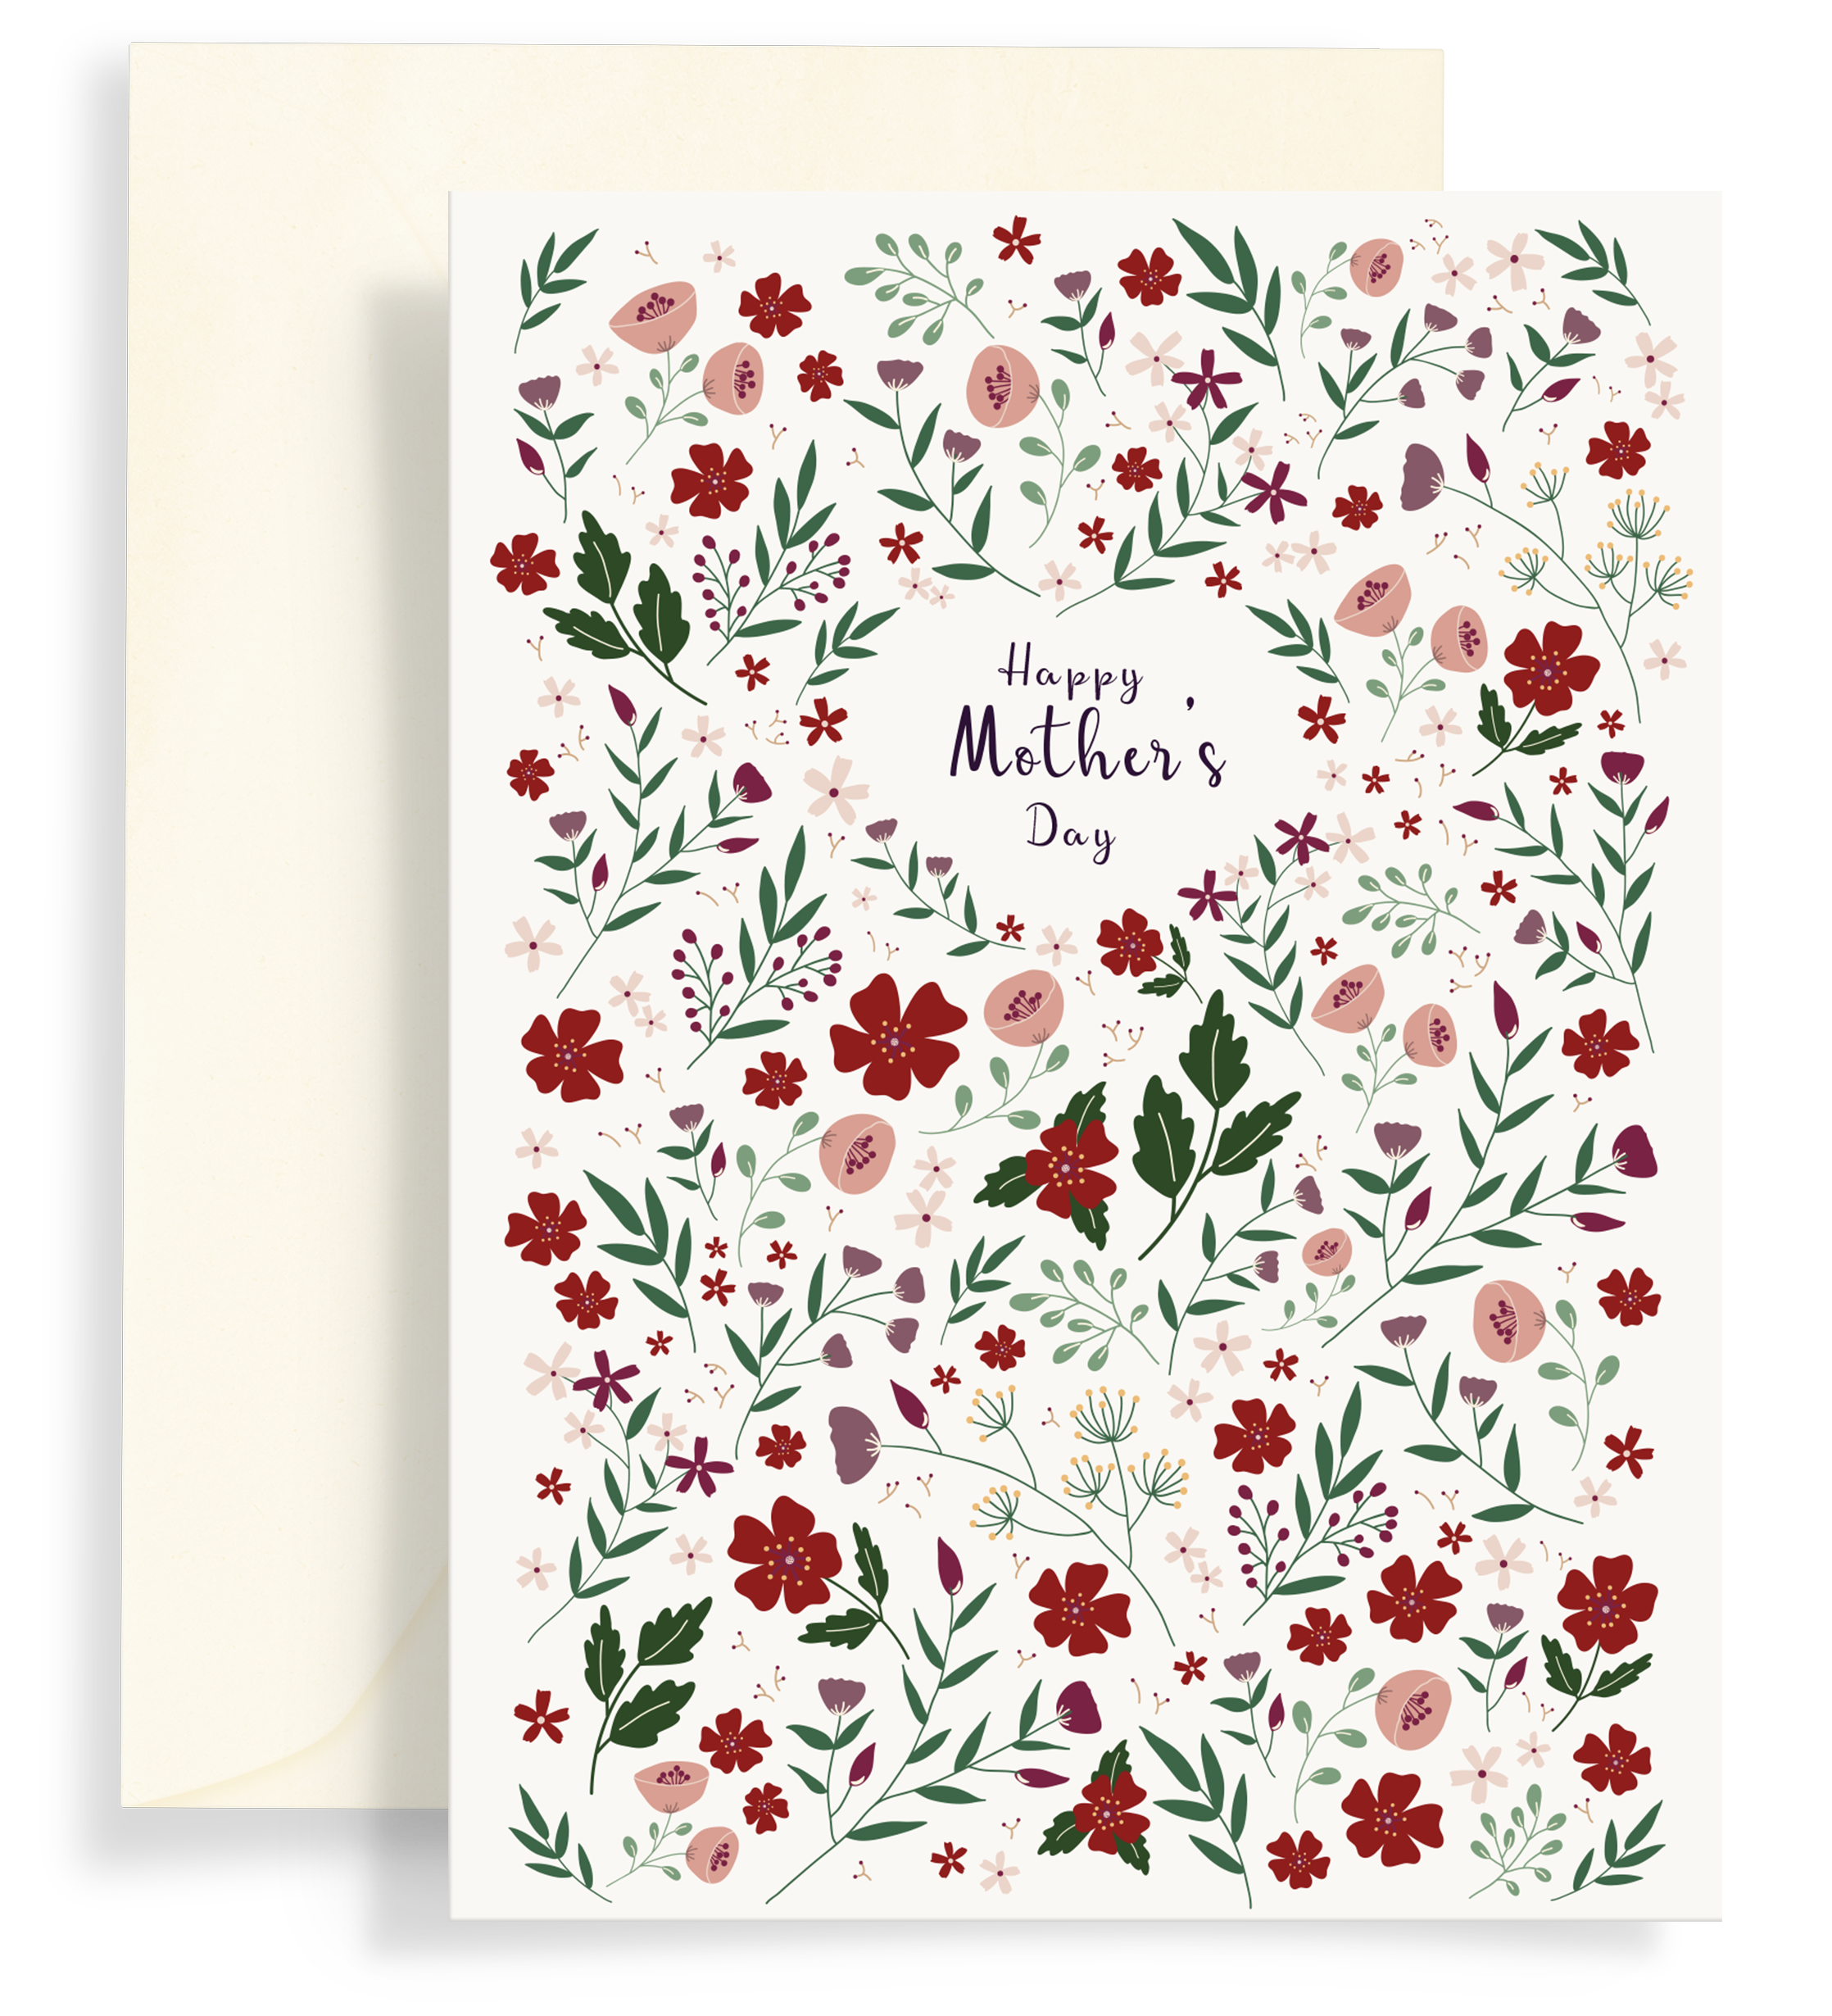 Illustrated greeting card with a beautiful red floral pattern on a white background. Text says 'happy mother's day'